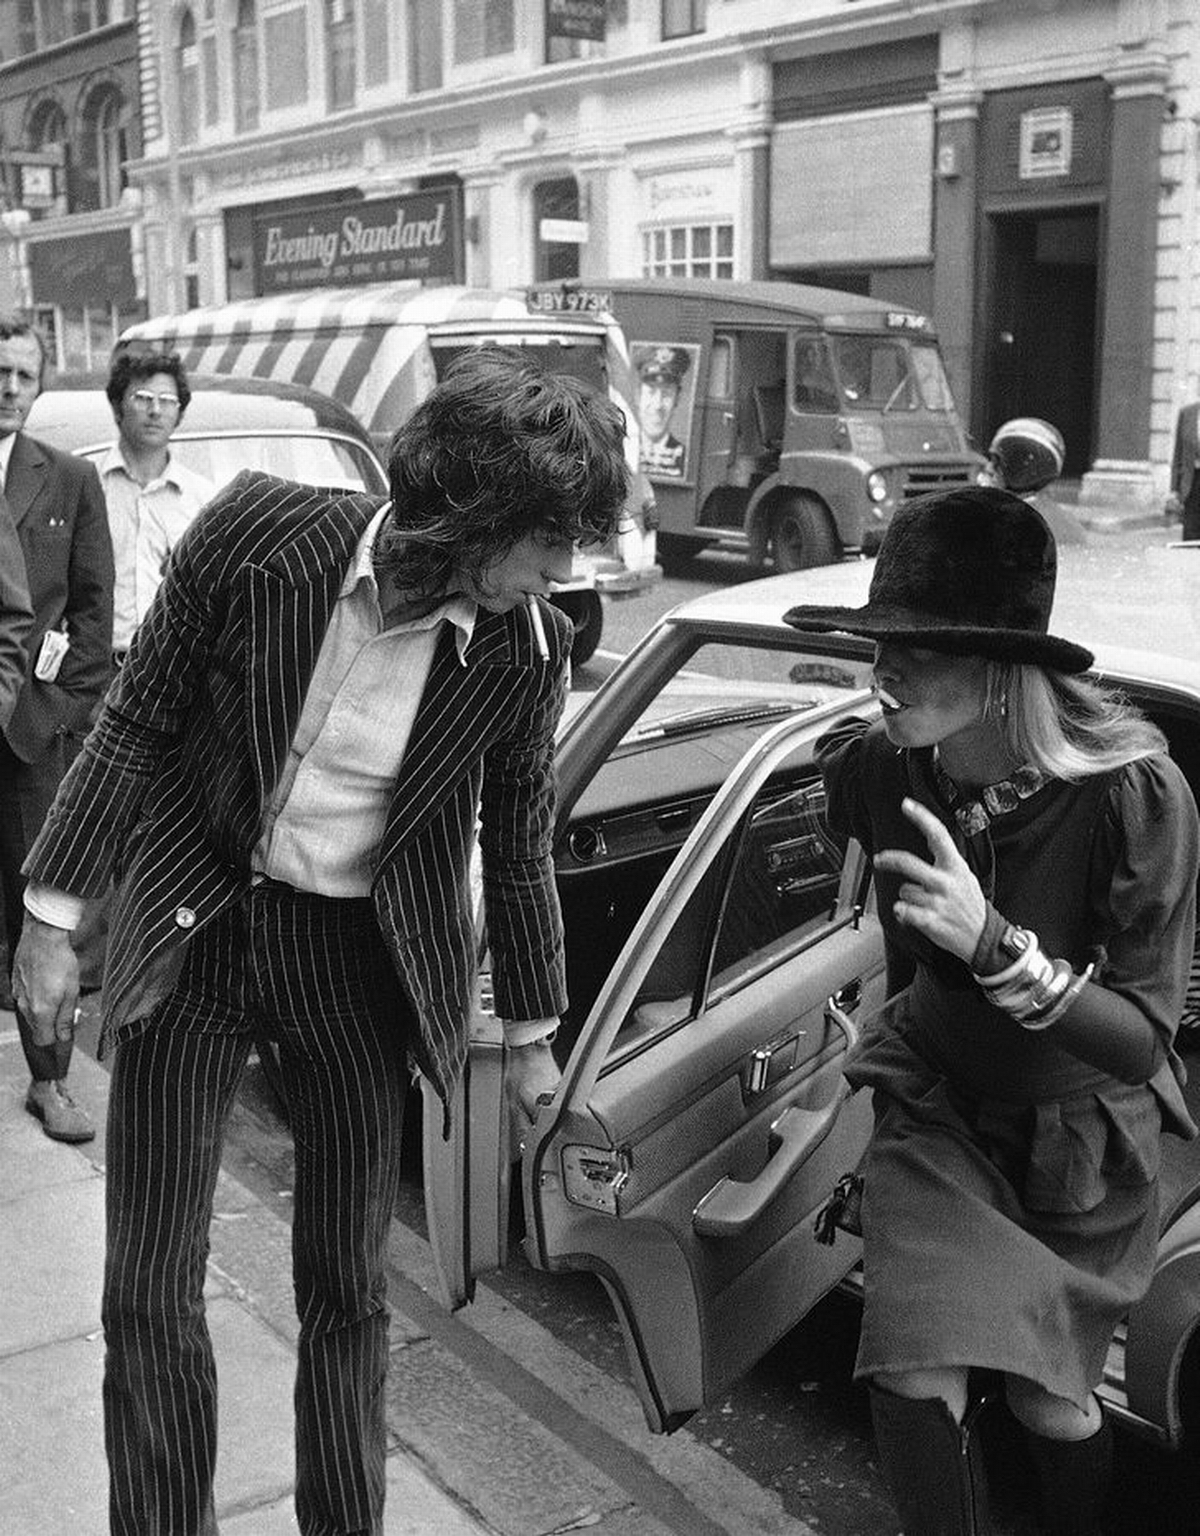 Rolling Stones Keith Richard, 29, accused of drugs and firearm charges, opens the door of car for girlfriend, actress Anita Pallenberg, 31, also charged with possessing drugs, on arrival at Marlborough Street Court in London on June 27, 1973. Appearing also with them was Polish actor Prince Jean Stanislas Klossowski. Richard was later freed on £1,000 bail. (AP Photo)